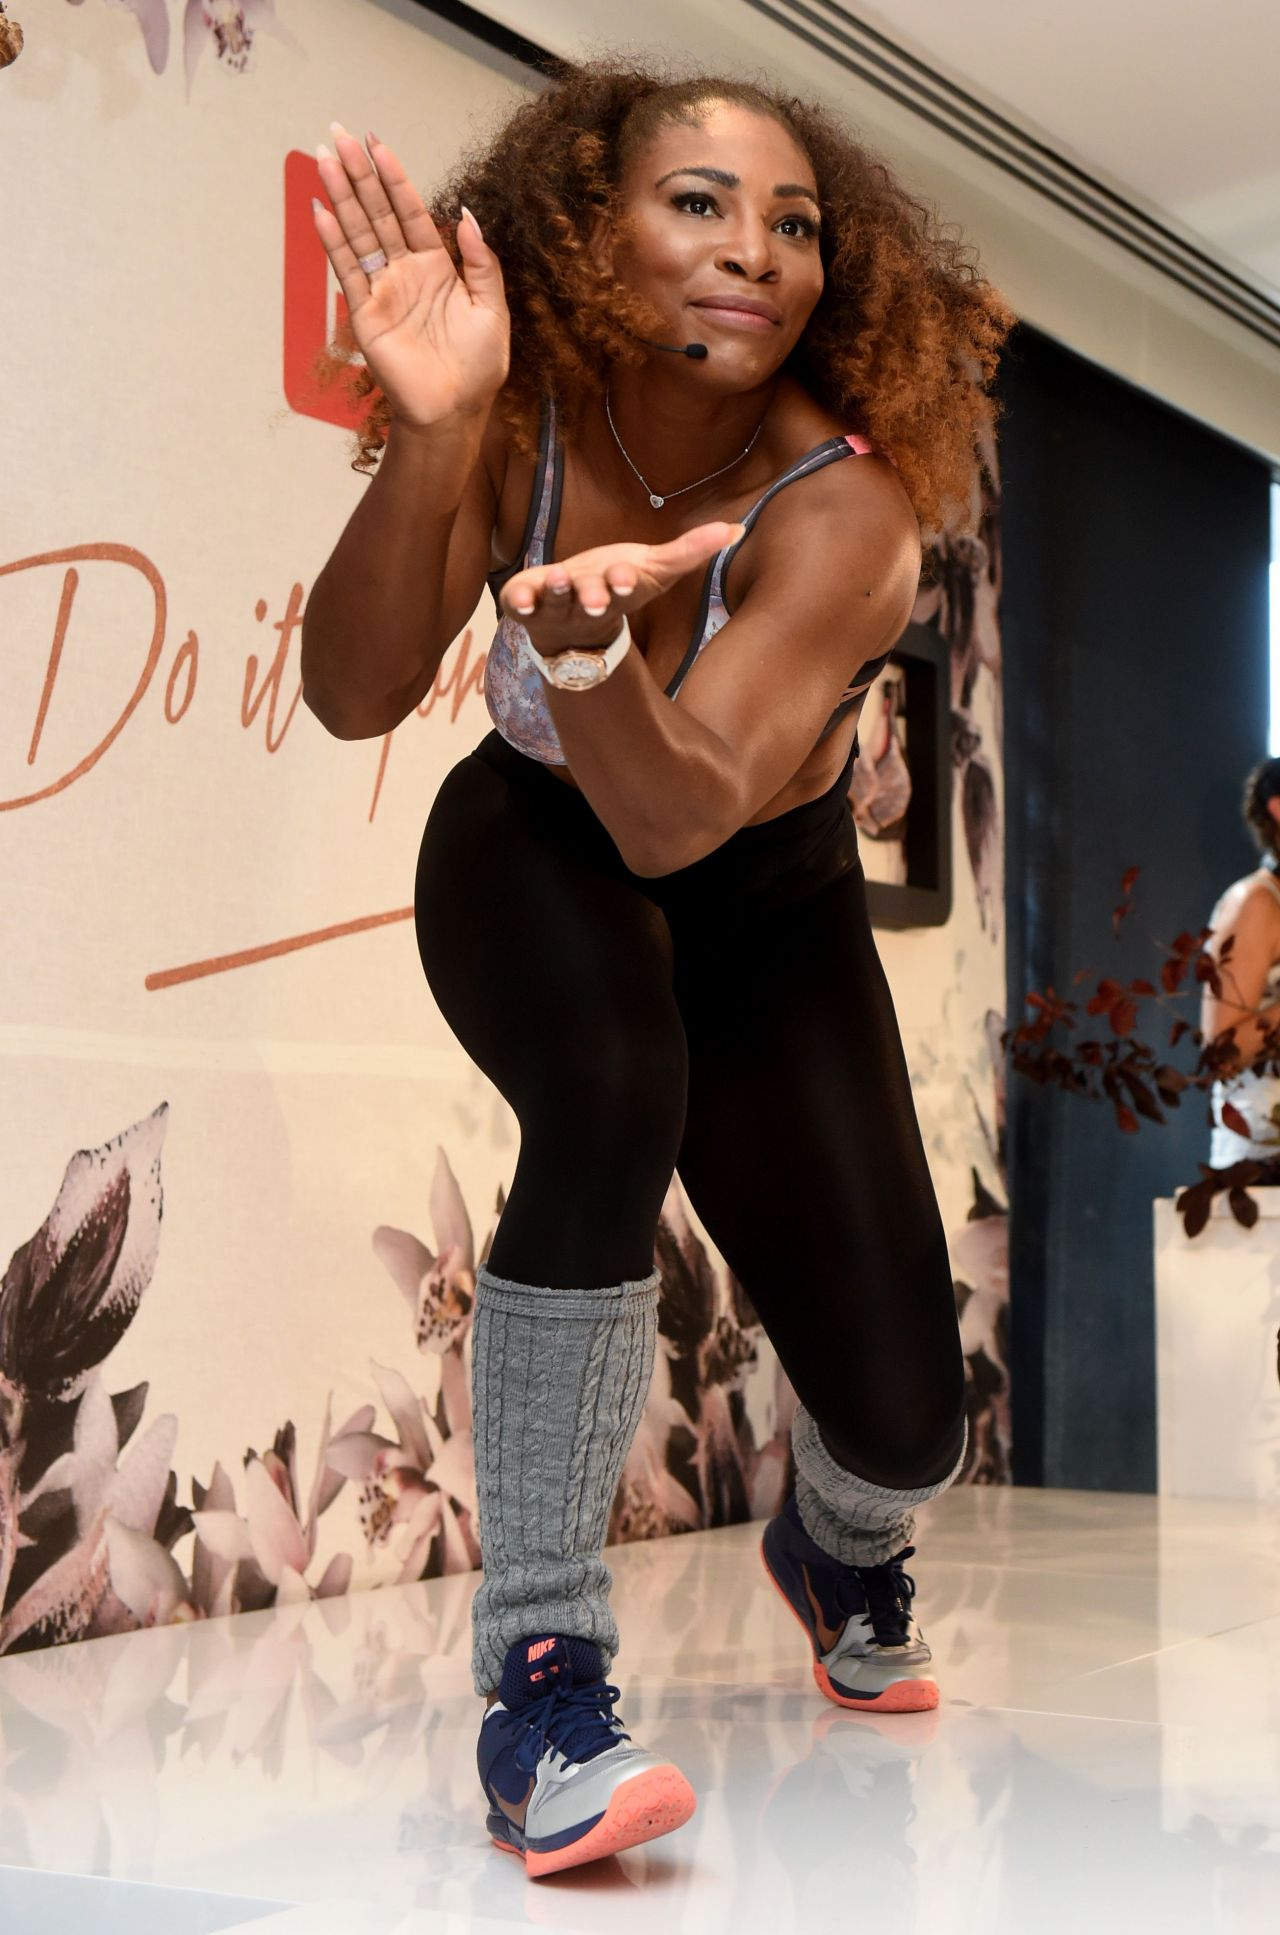 download serena williams dancing performance images free background hd computer